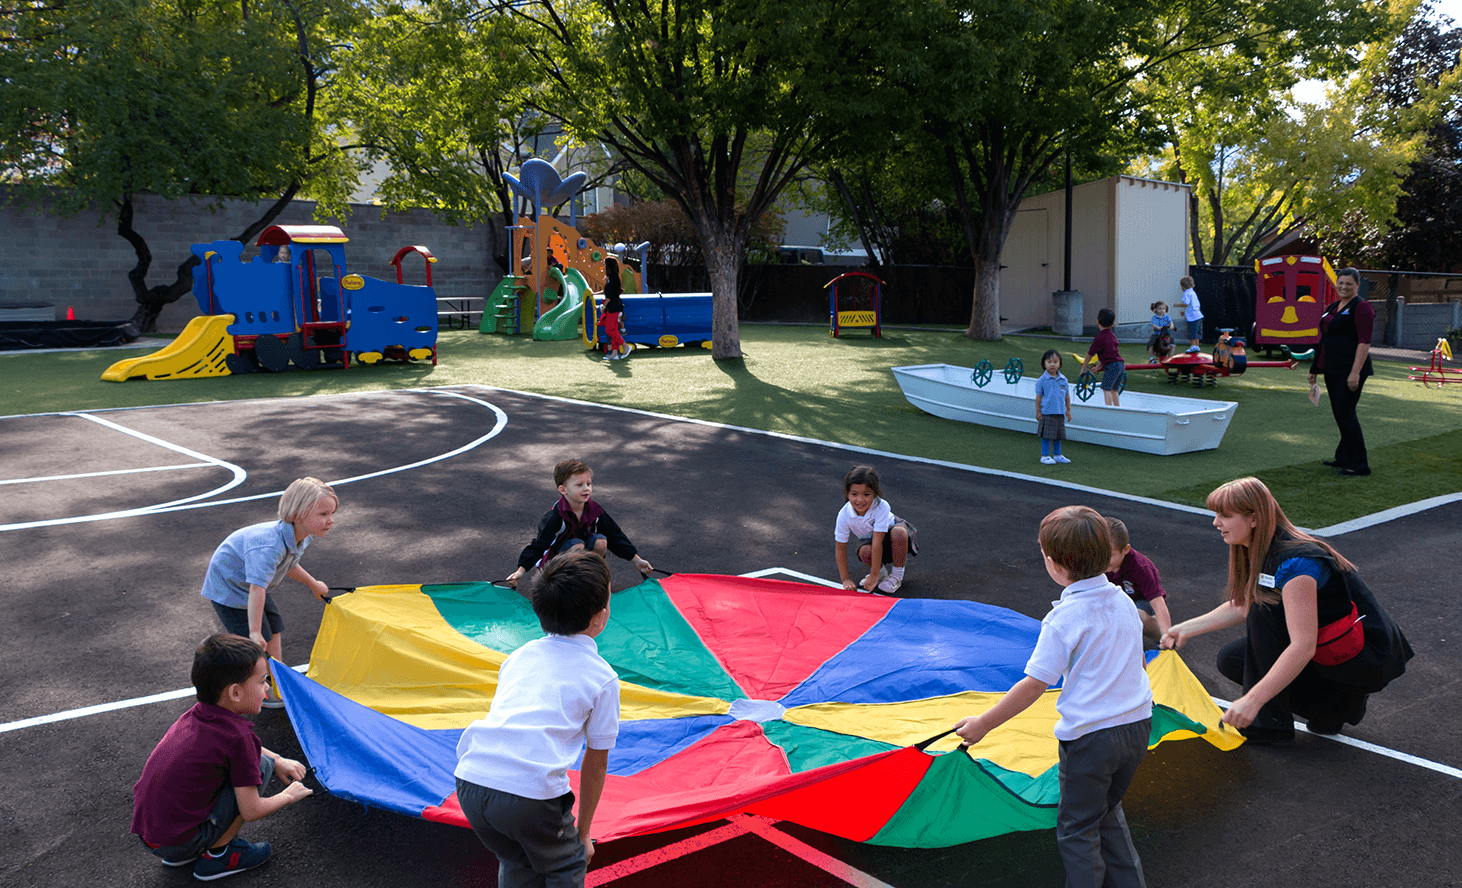 Playground | Challenger School - Holladay | Private School In Holladay, Utah